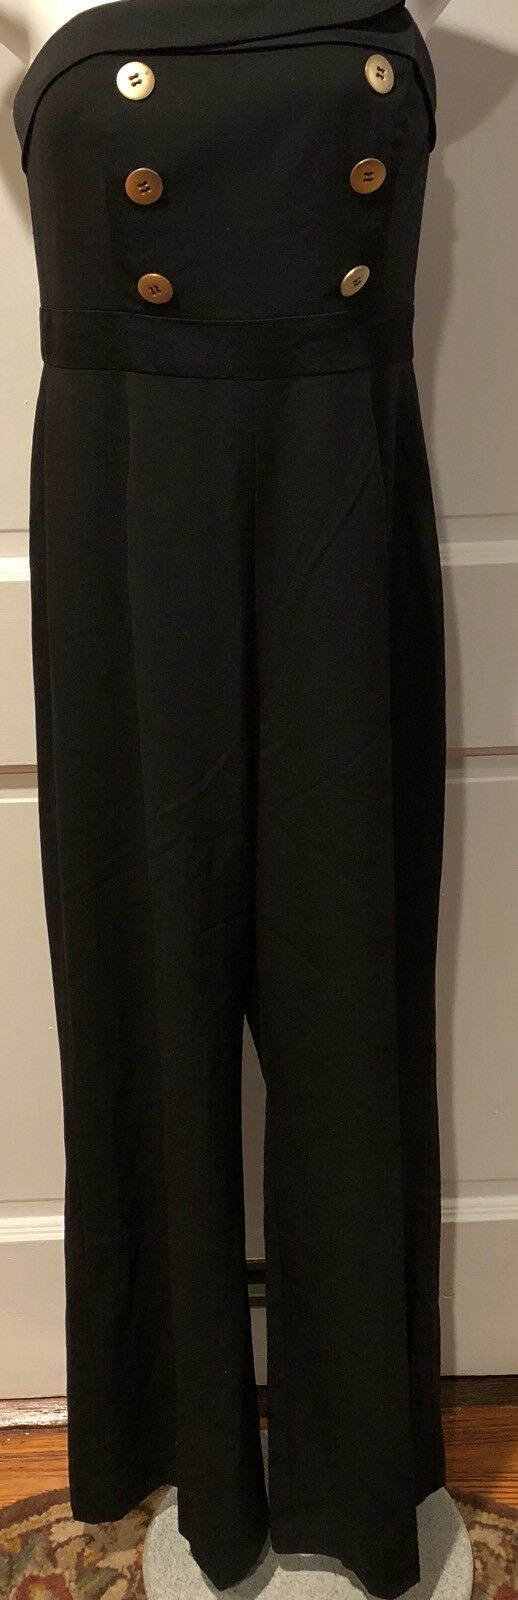 FREE PEOPLE The Robyn Exclusive Jumpsuit SIZE 6 New With Out Tags. Retails